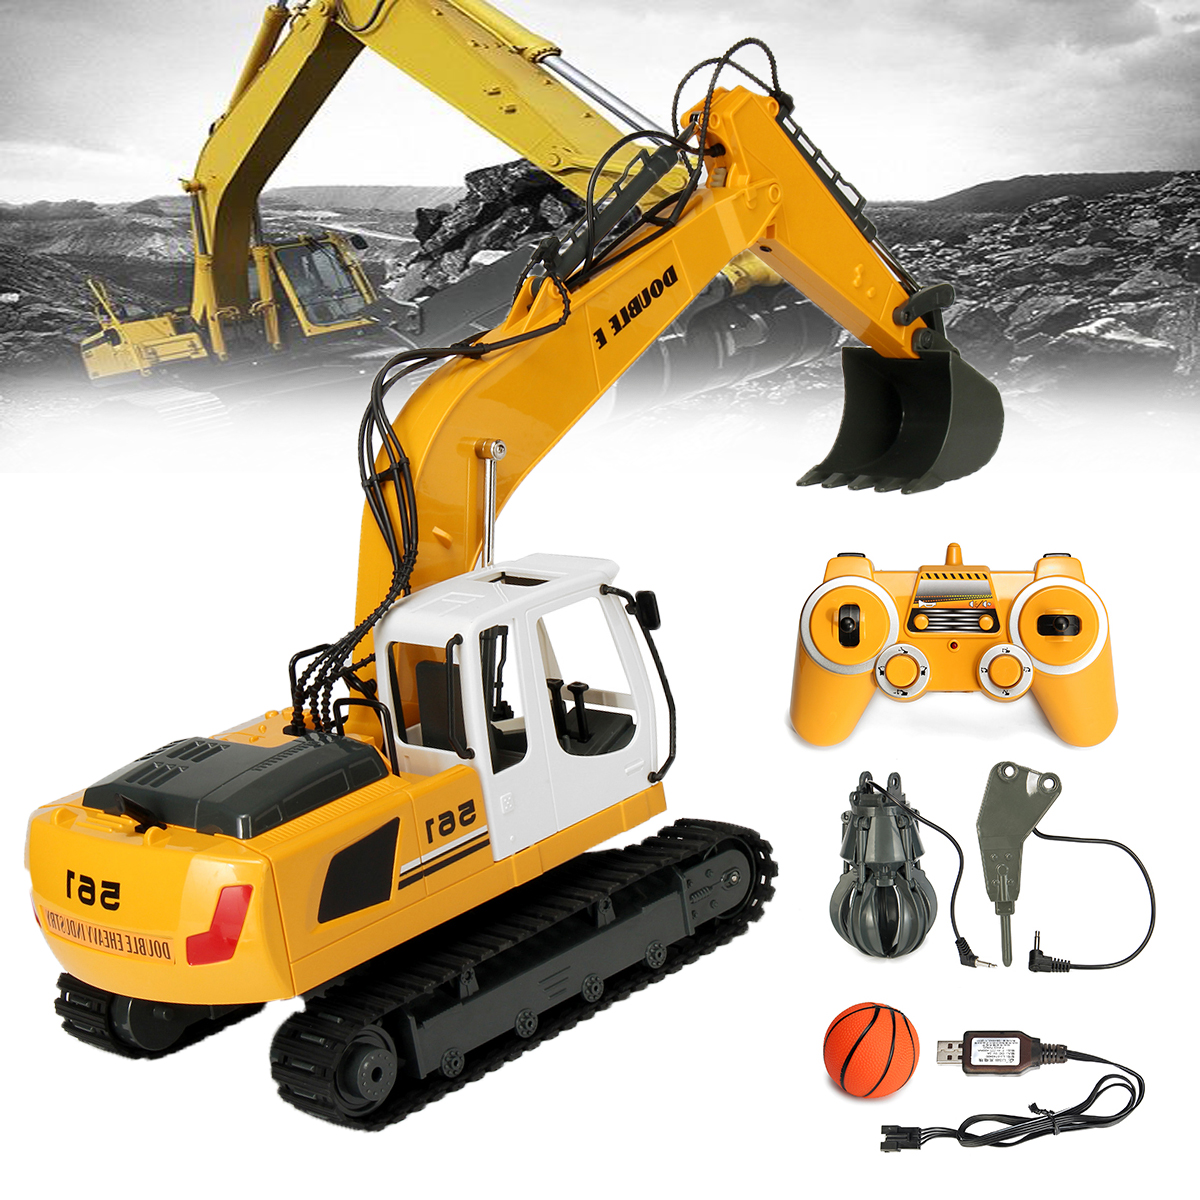 RC Excavator 17 Channel 2.4G Remote Control Construction Truck Crawler Digger Tractor Model Engineering RC Truck Toy rc excavator 15ch 2 4g remote control constructing truck crawler digger model electronic engineering truck toy радиоуправляемые ма